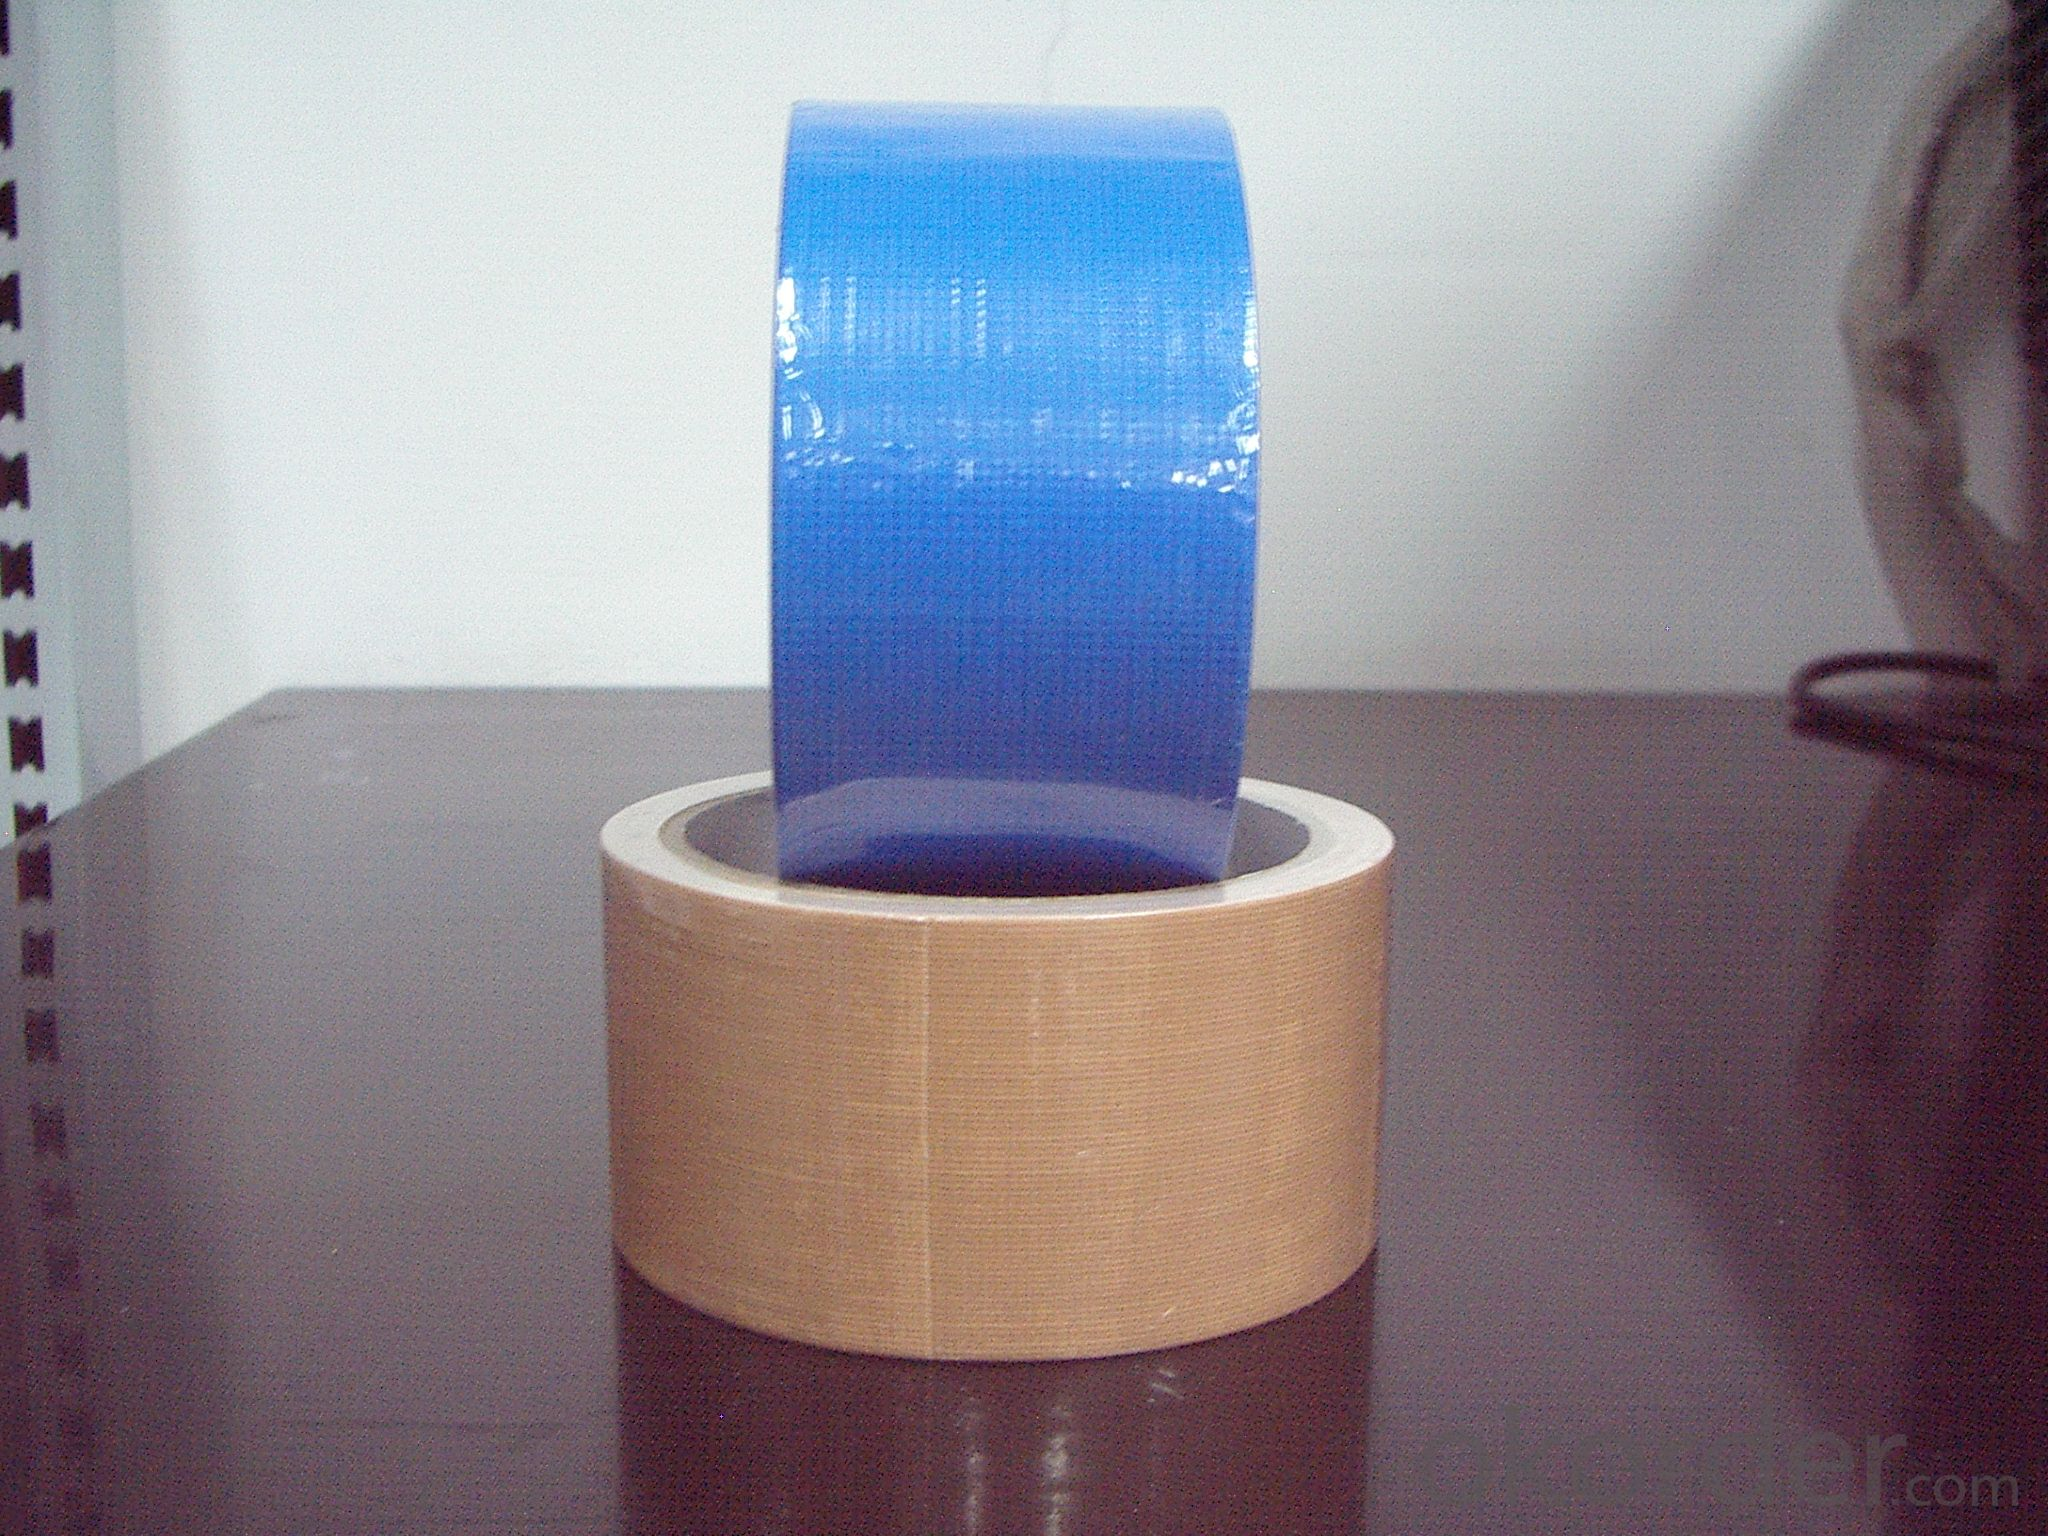 China Manufacturer Certificated Cloth Tape CY-90